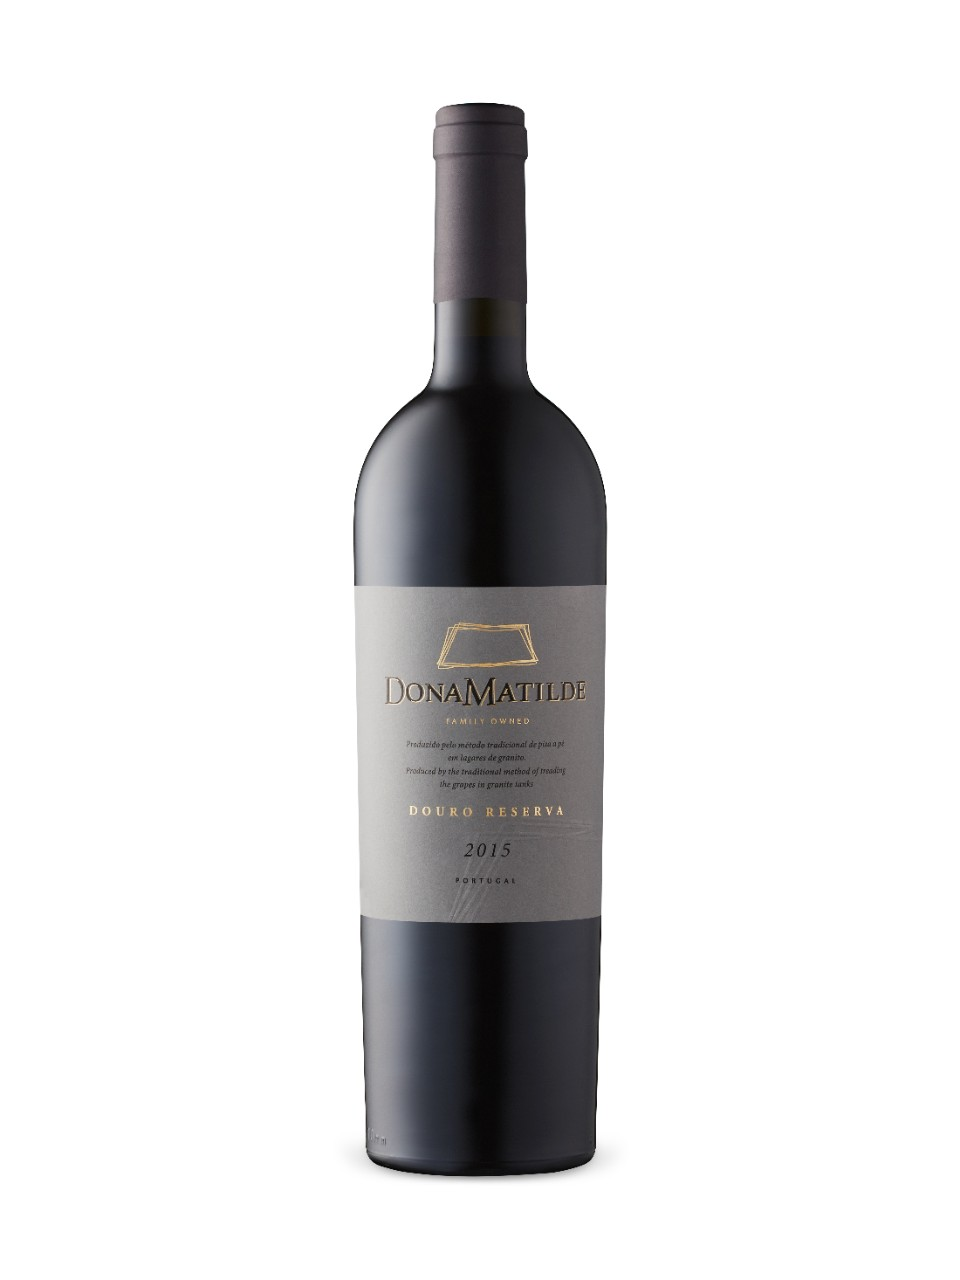 Dona Matilde Duoro Reserve Red 2015 from LCBO